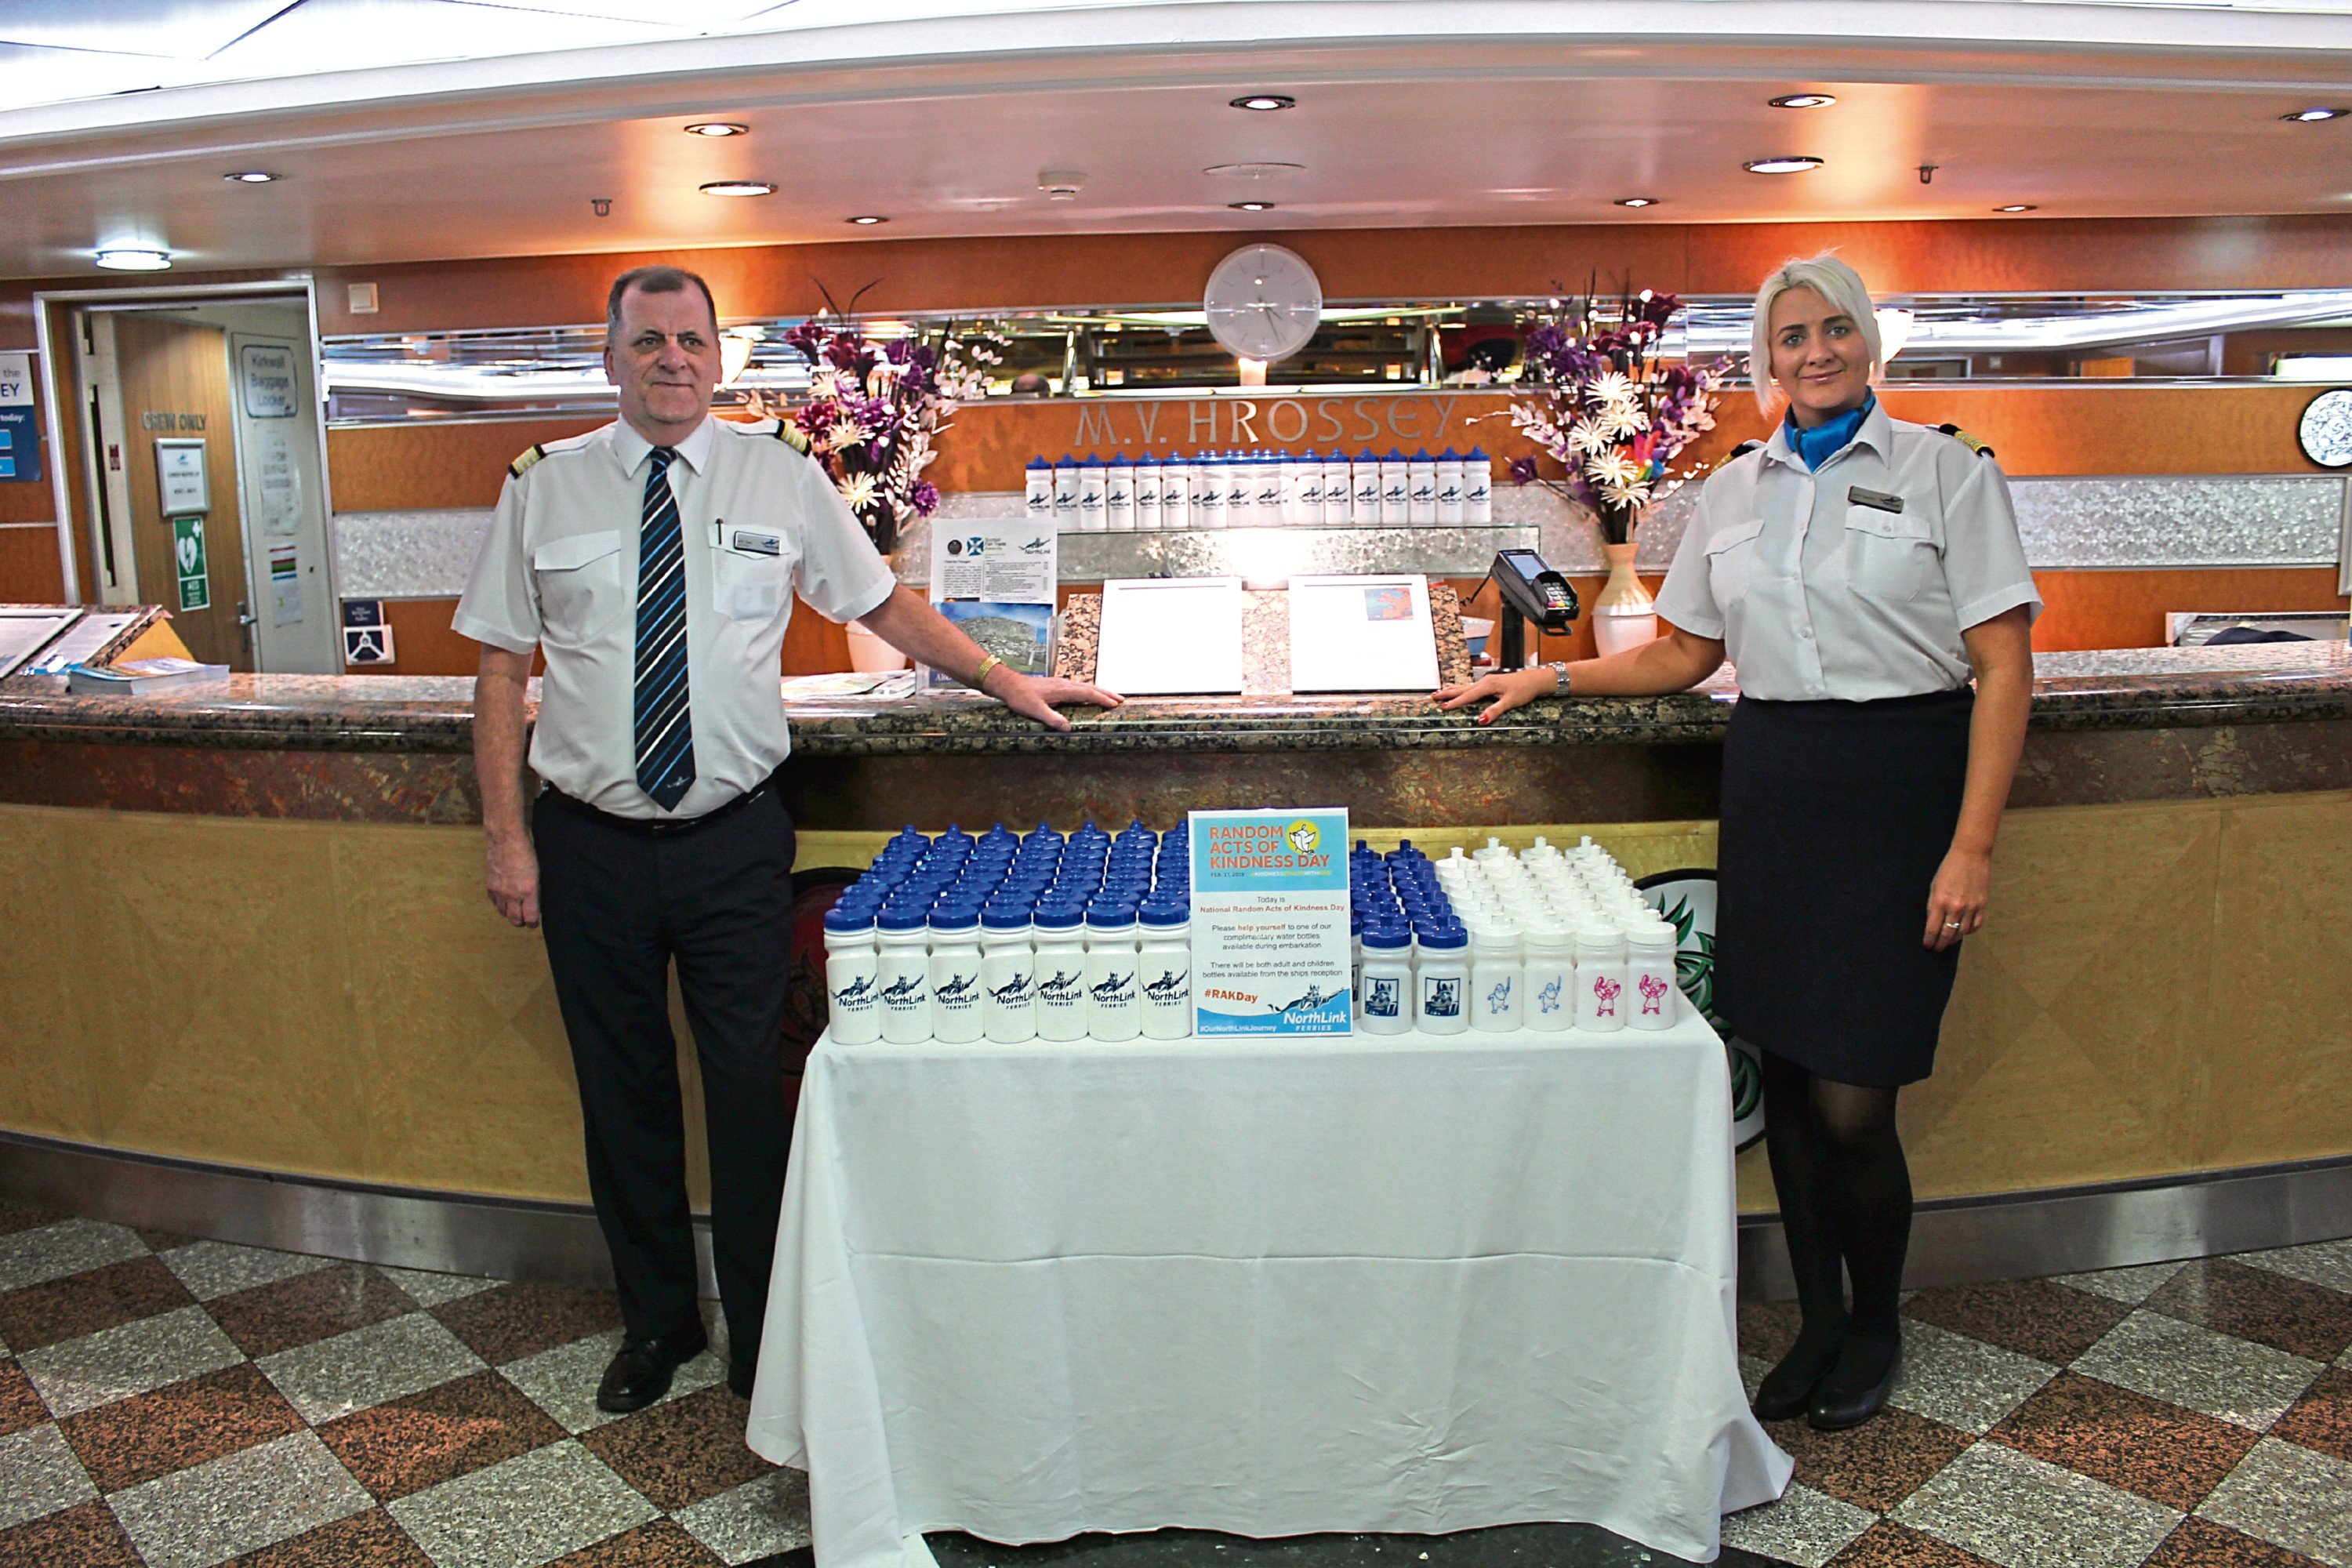 Passengers on NorthLink Ferries were treated to random acts of kindness